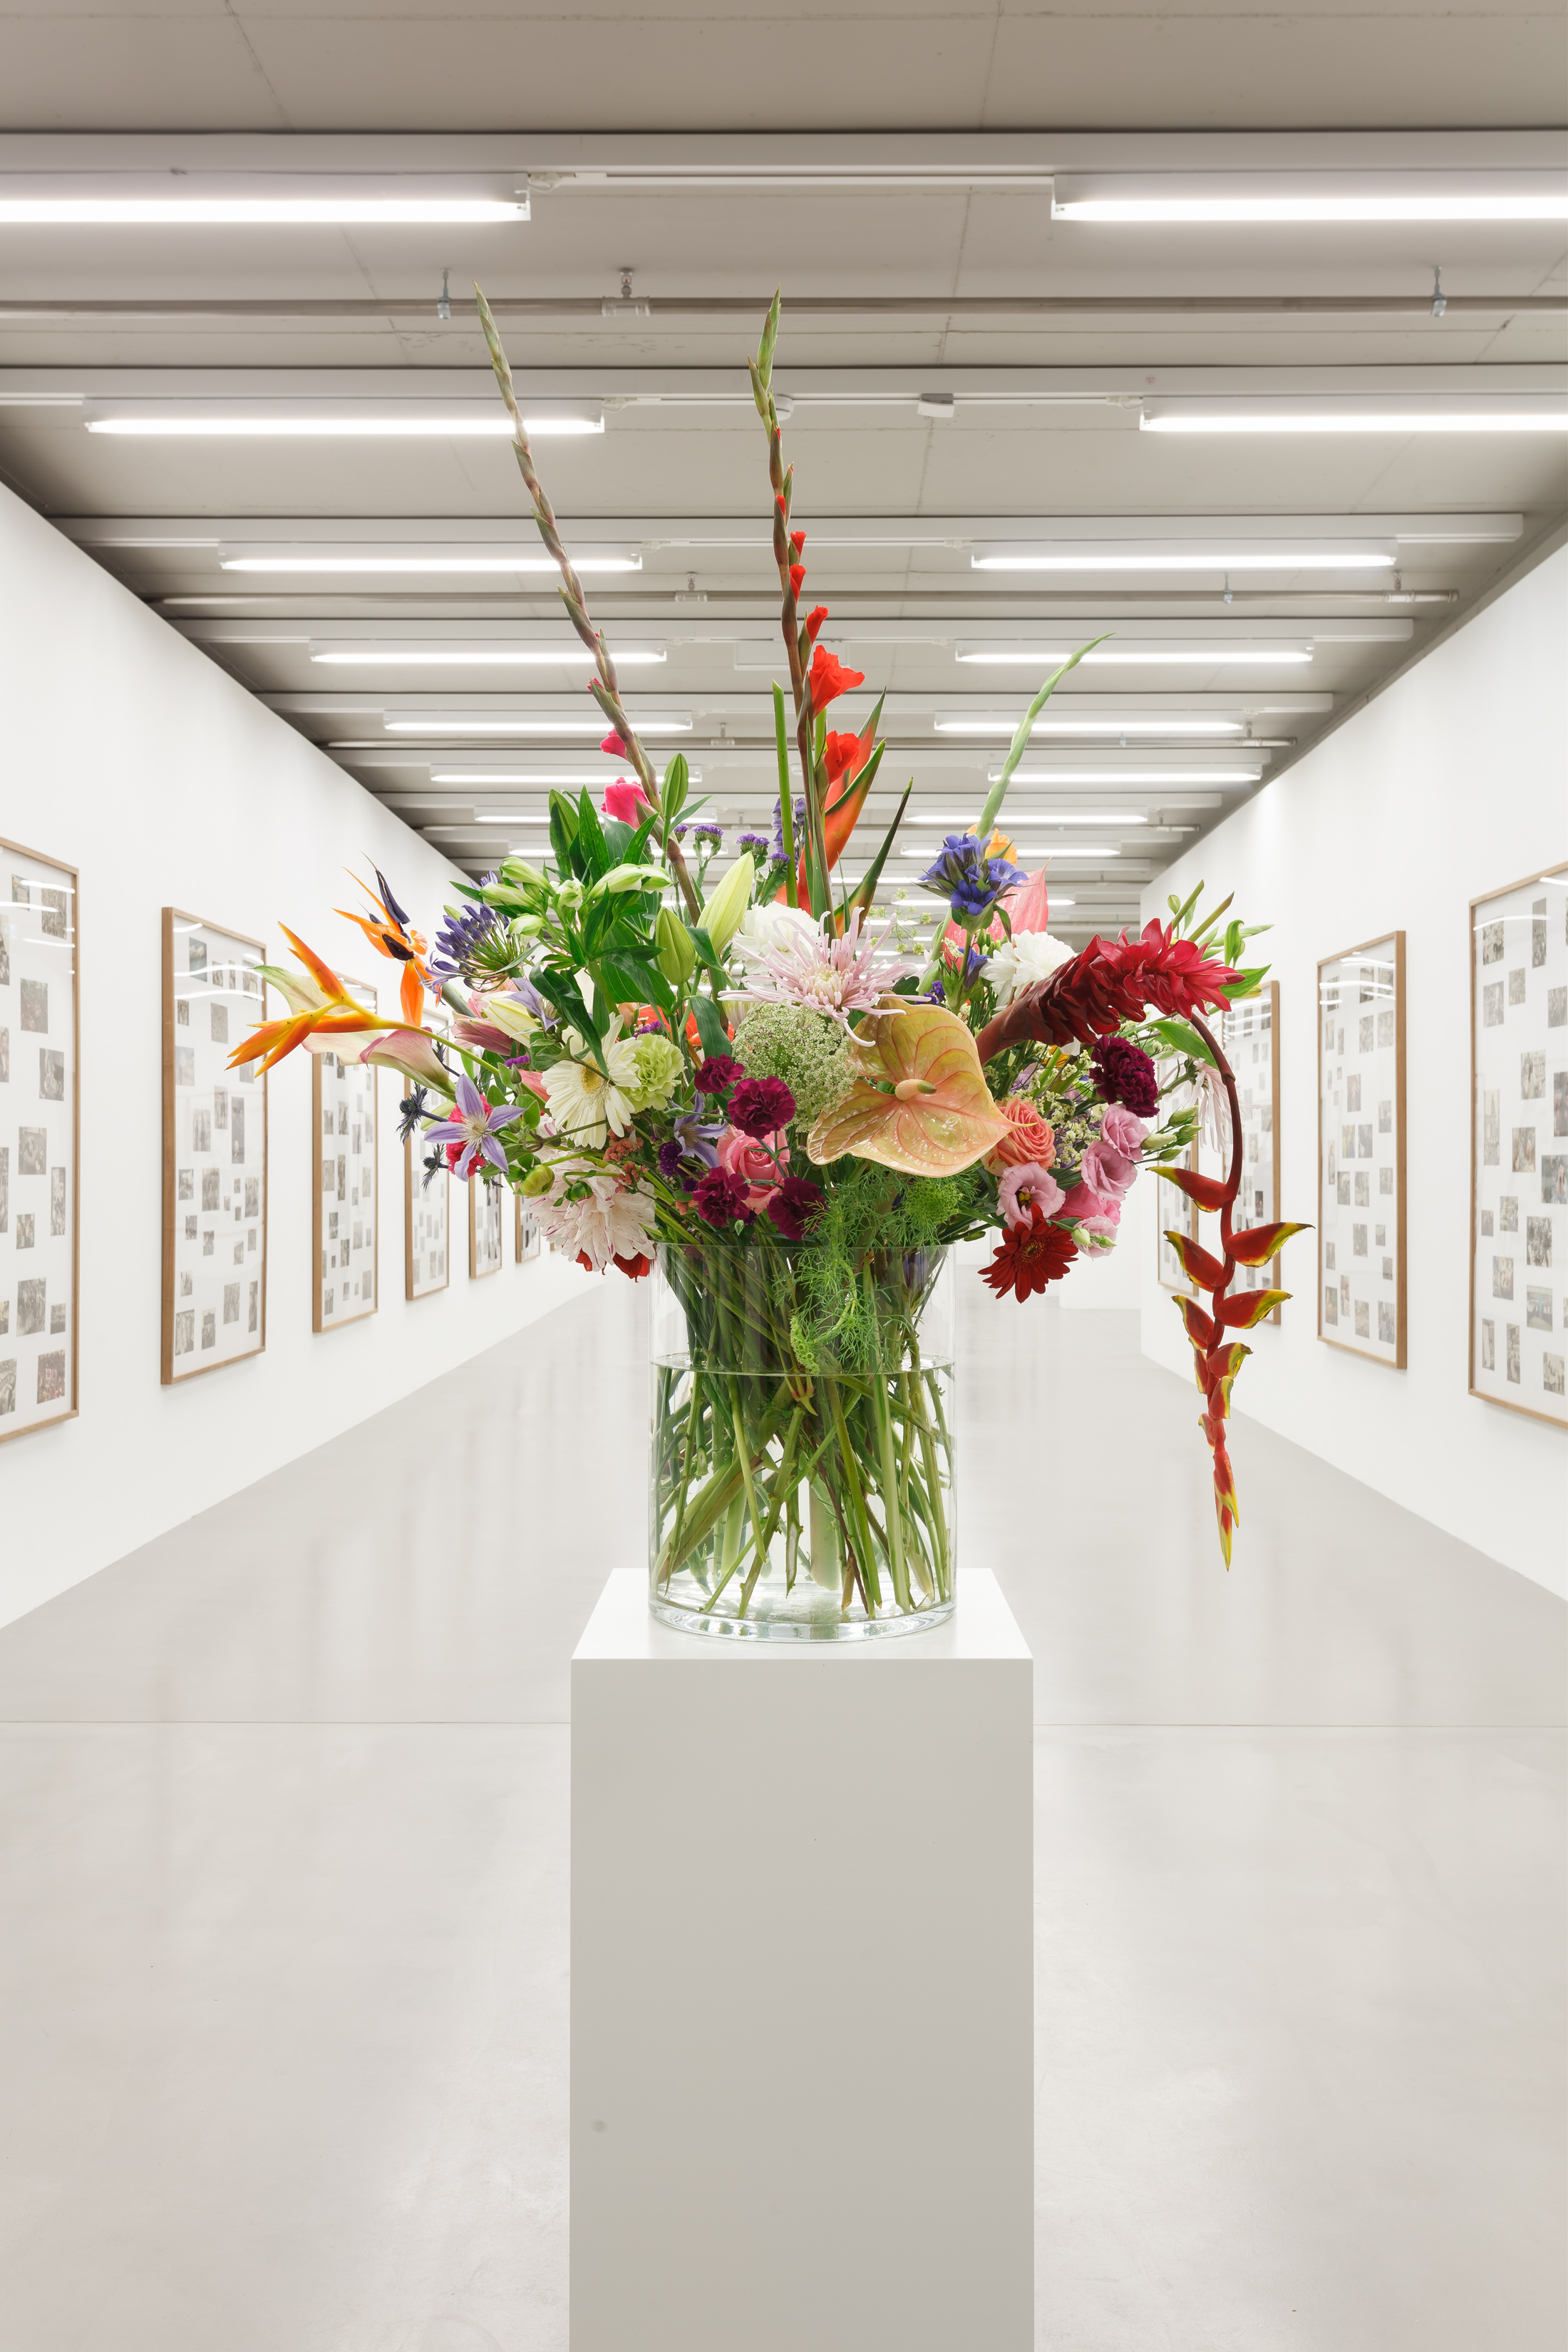 Willem de Rooij, Bouquet V, 2010. Installationsansicht/installation view MMK Museum für Moderne Kunst Frankfurt am Main 2016, Courtesy Sammlung Haubrok, Berlin. Foto/photo: Axel Schneider